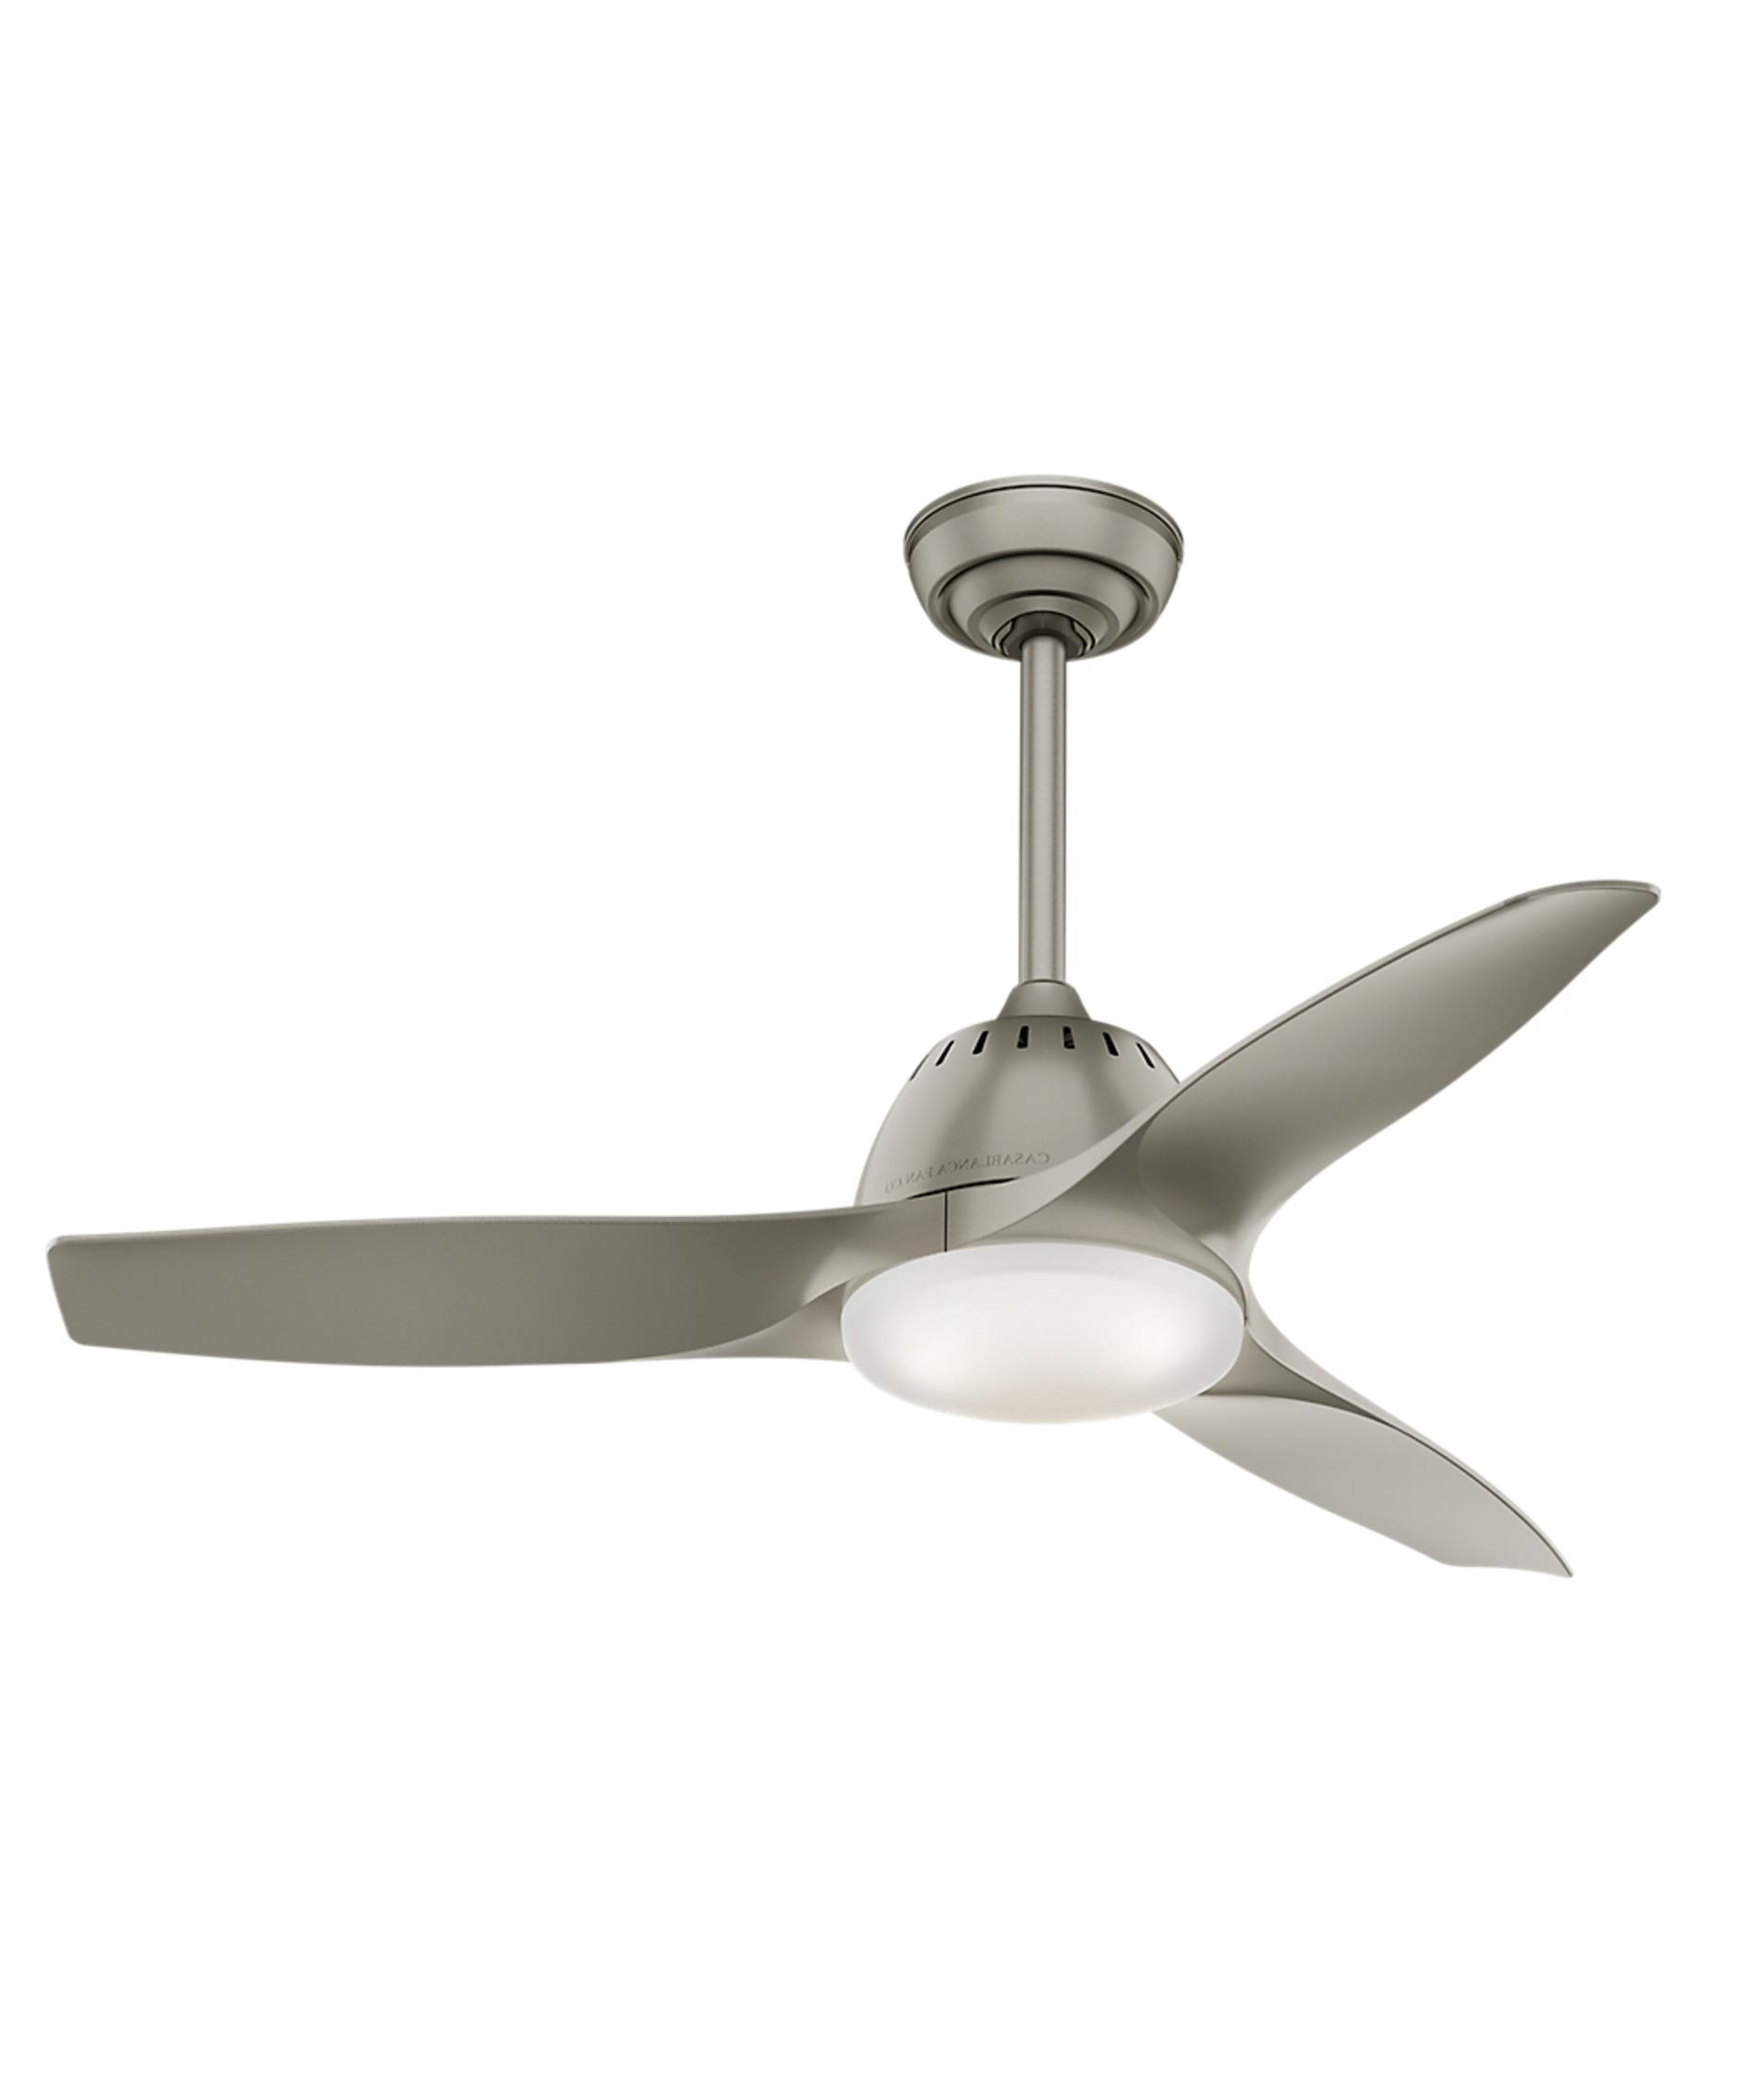 Capitol Lighting Pertaining To Casablanca Outdoor Ceiling Fans With Lights (View 3 of 20)